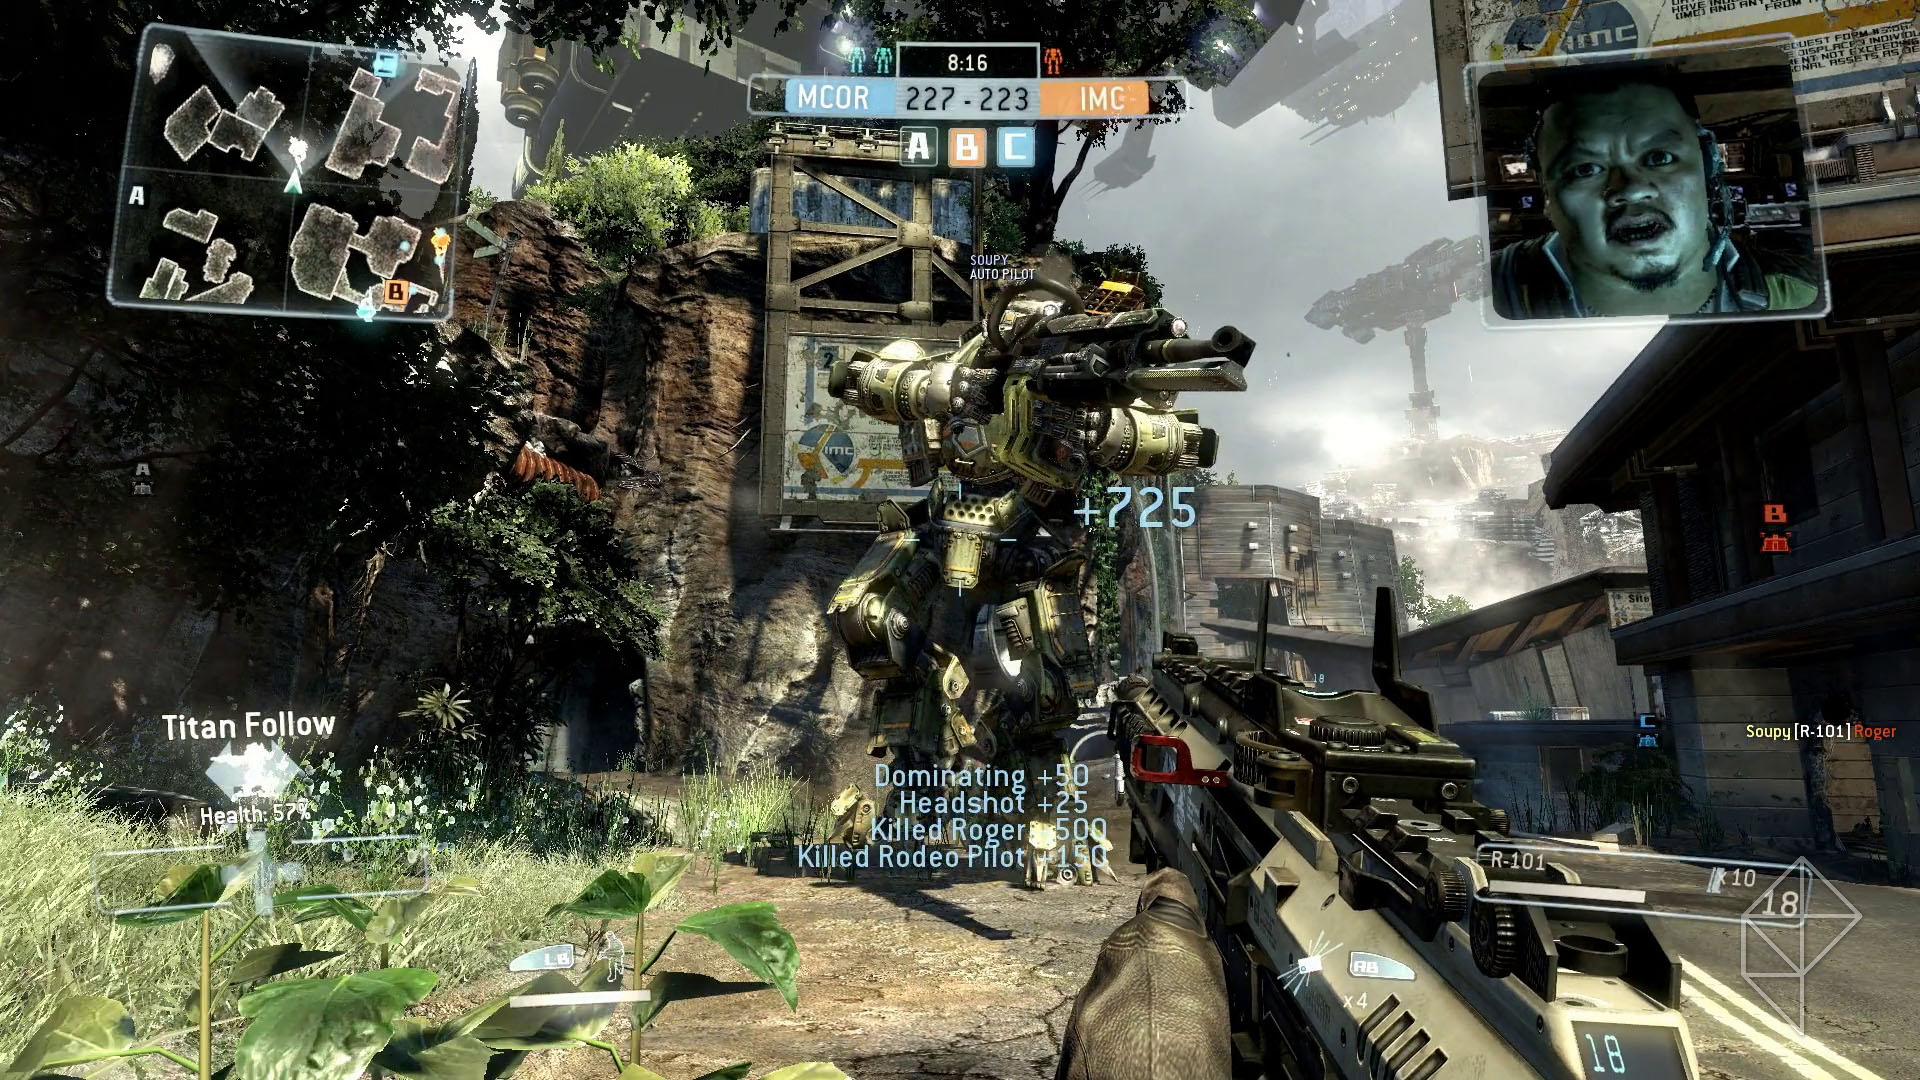 Comparativa de Titanfall en PC vs Xbox One vs Xbox 360 ¿Cual se ve mejor? [Video]